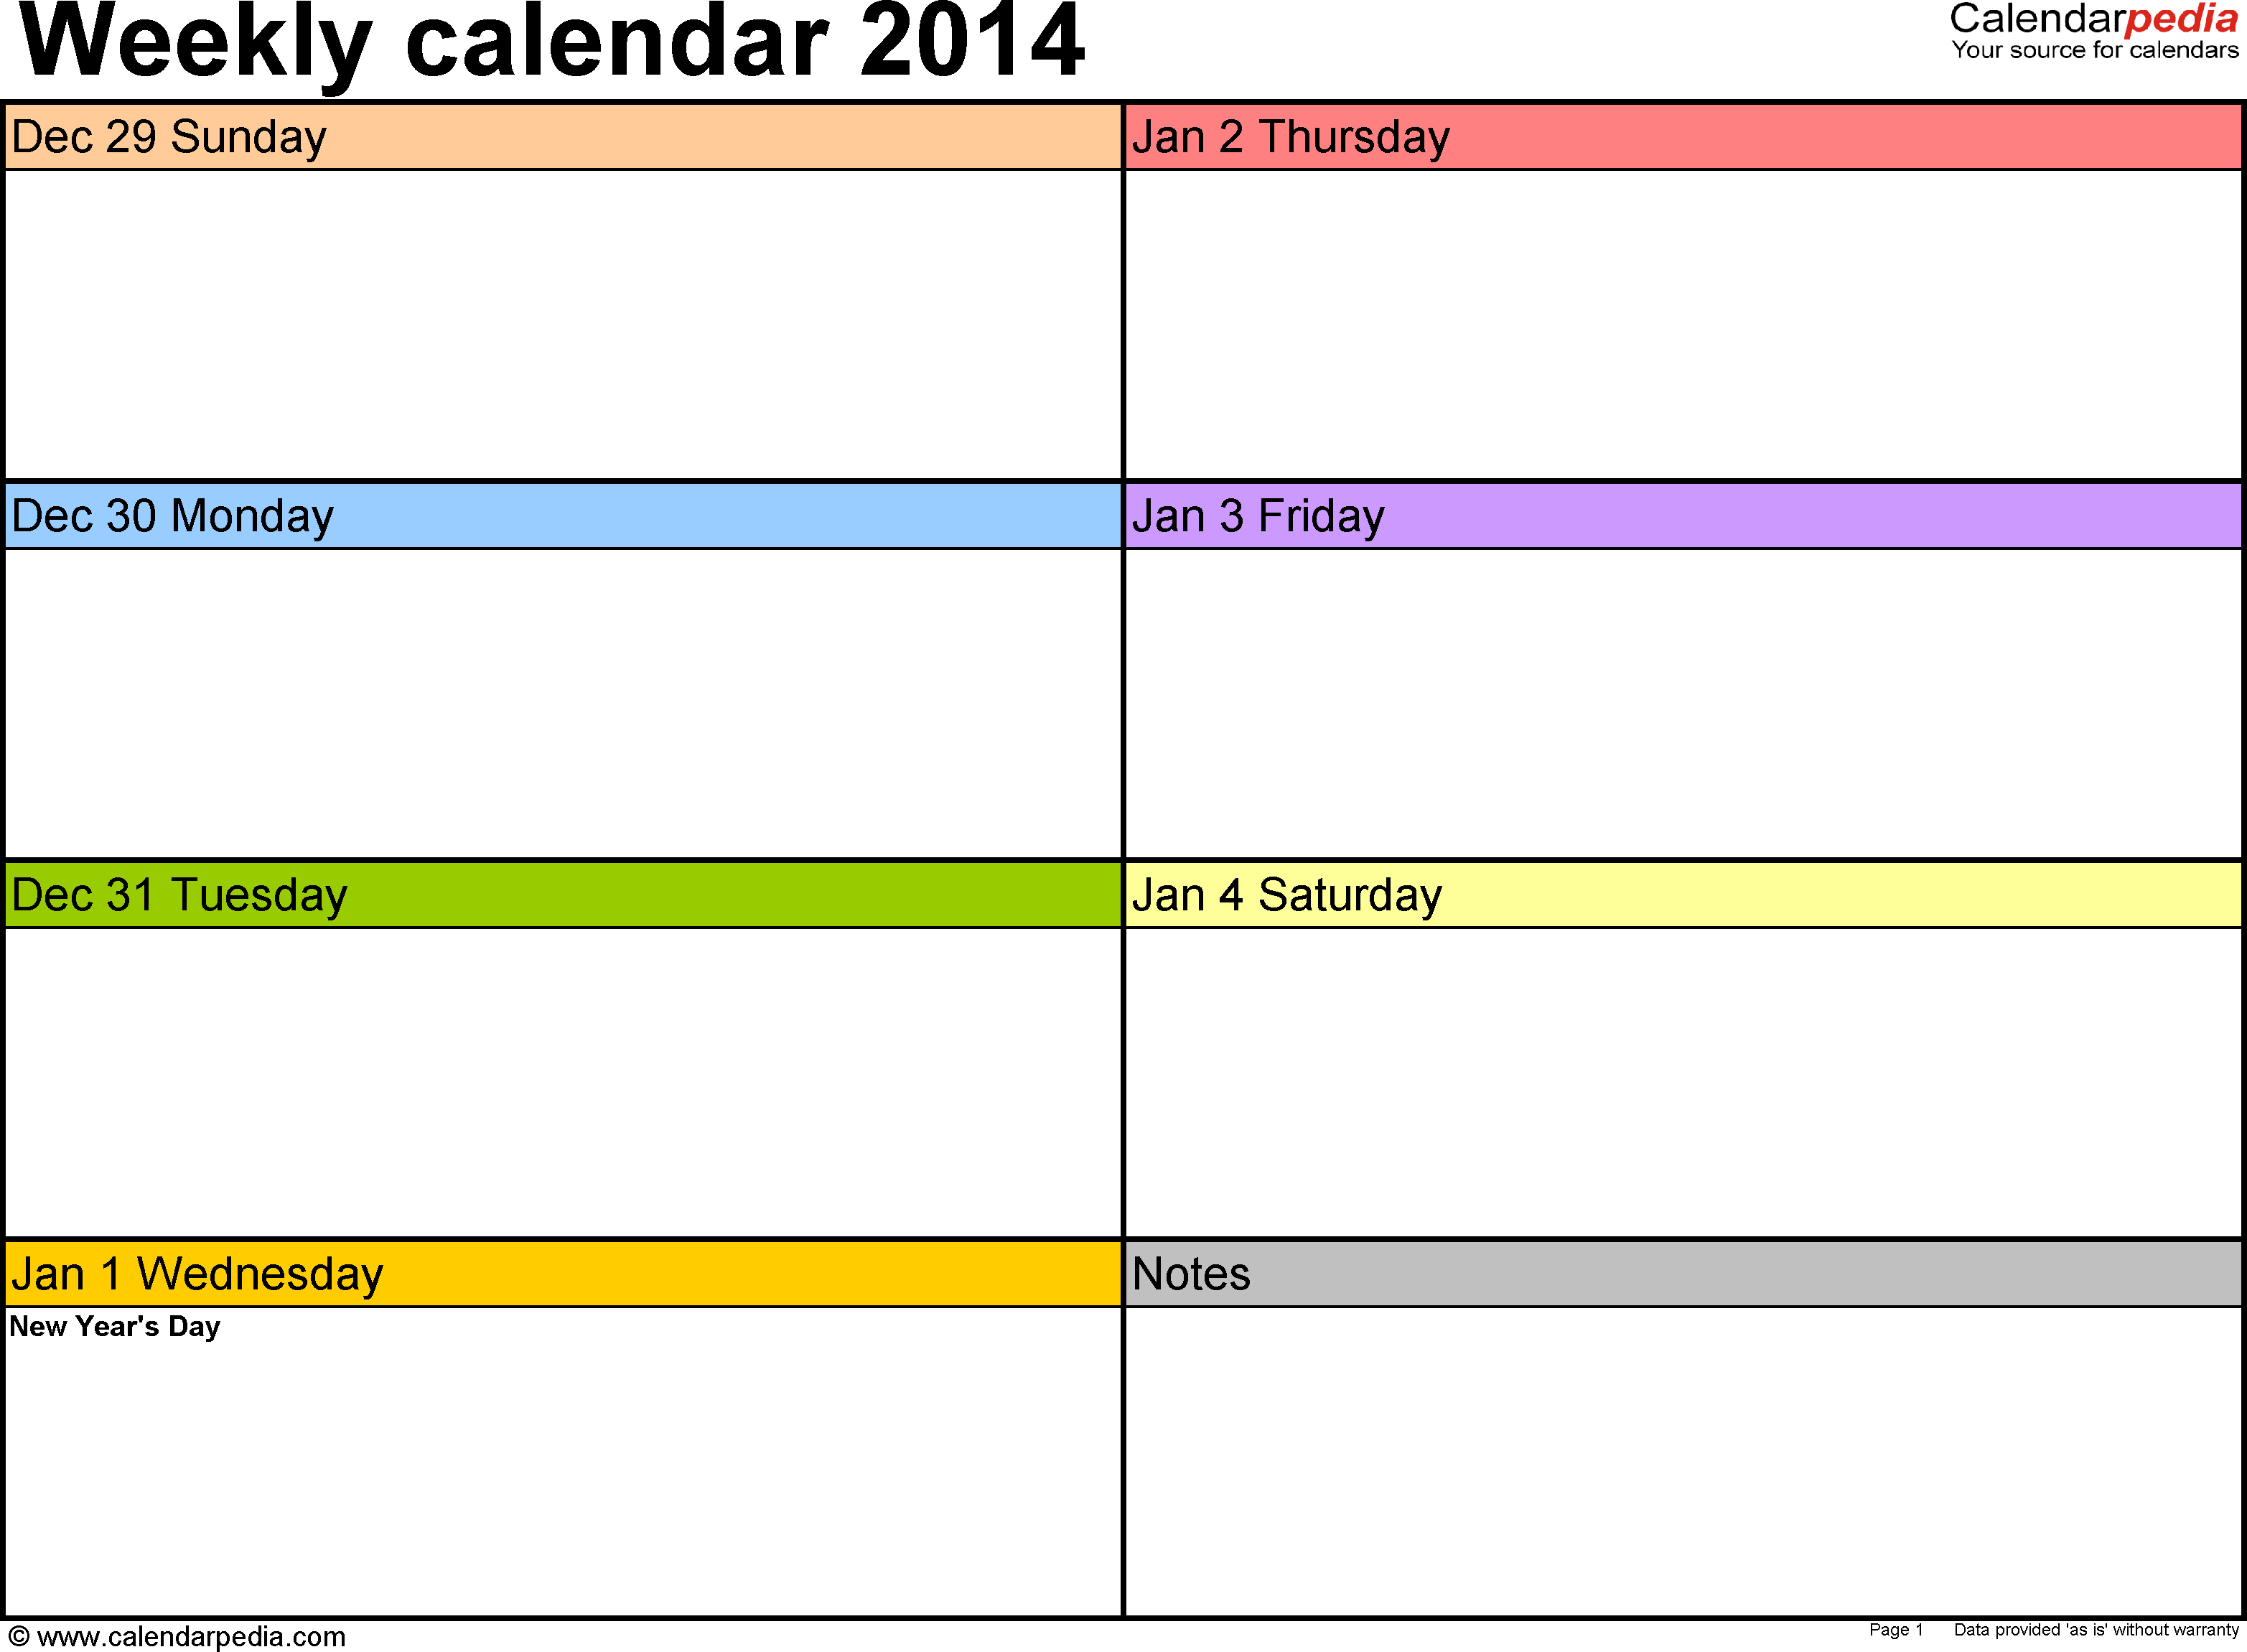 Free Weekly Calendar Template | Weekly Calendar 2014 For Word 4 Free Printable Templates